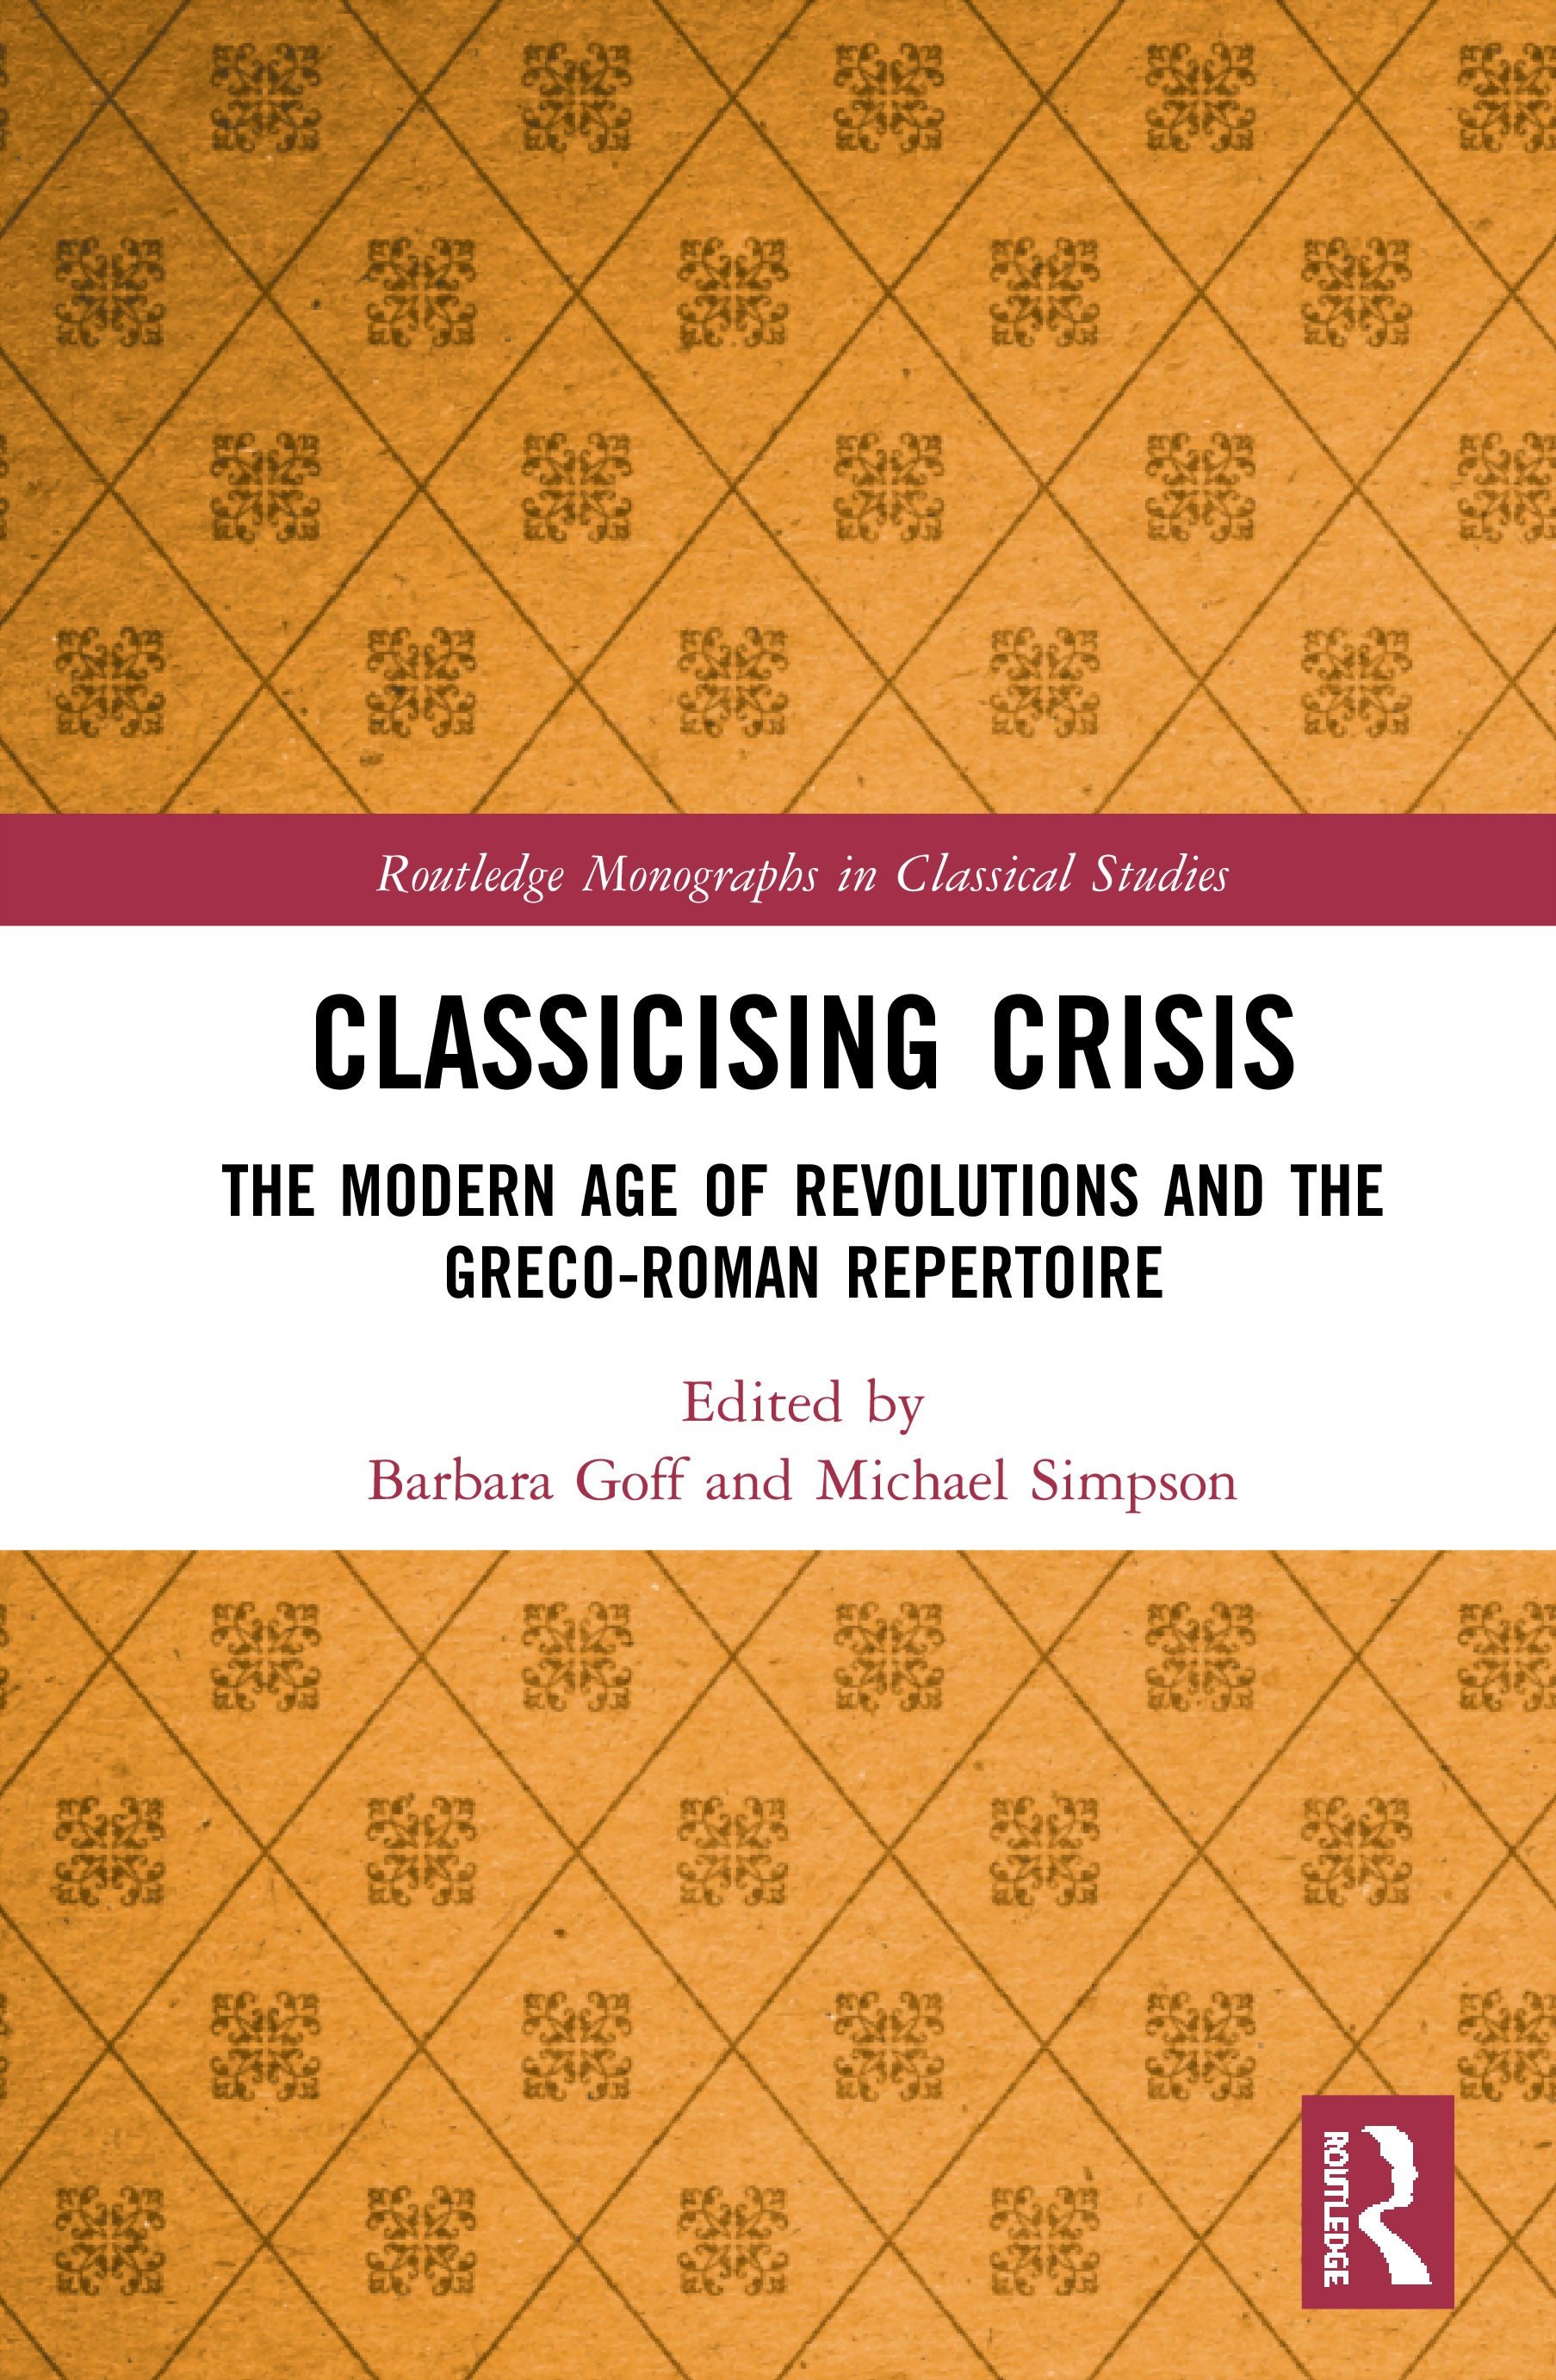 Classicising Crisis: The Modern Age of Revolutions and the Greco-Roman Repertoire, 1st Edition (Hardback) book cover